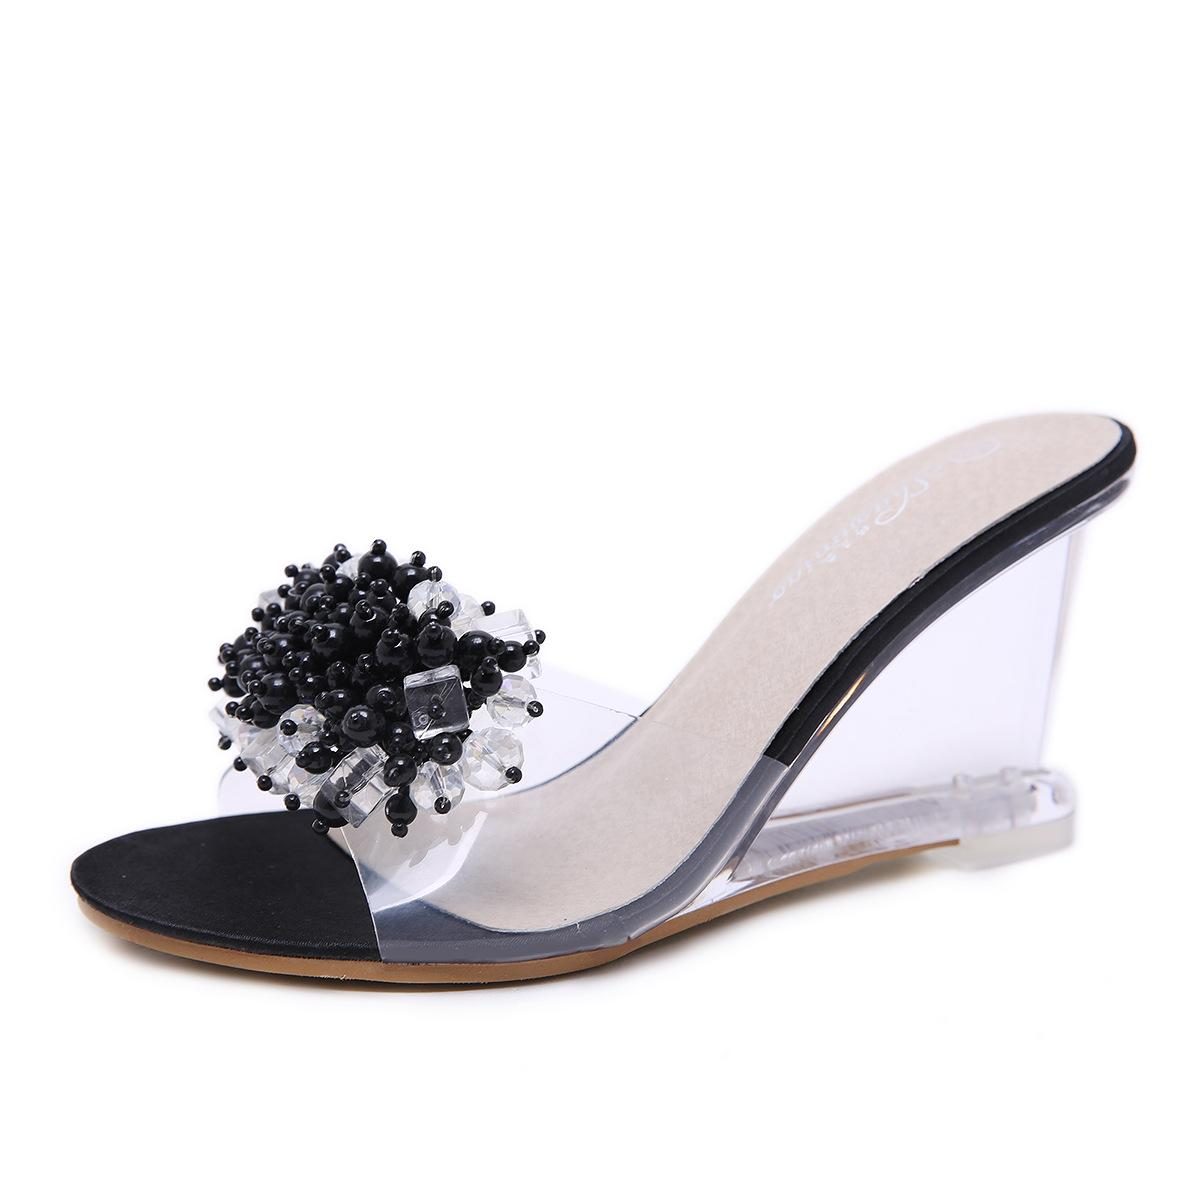 Femmes Chaussons Sandales 2020 Sexy Summer cristal transparent hauts talons en verre strass Chaussons Taille 34-43